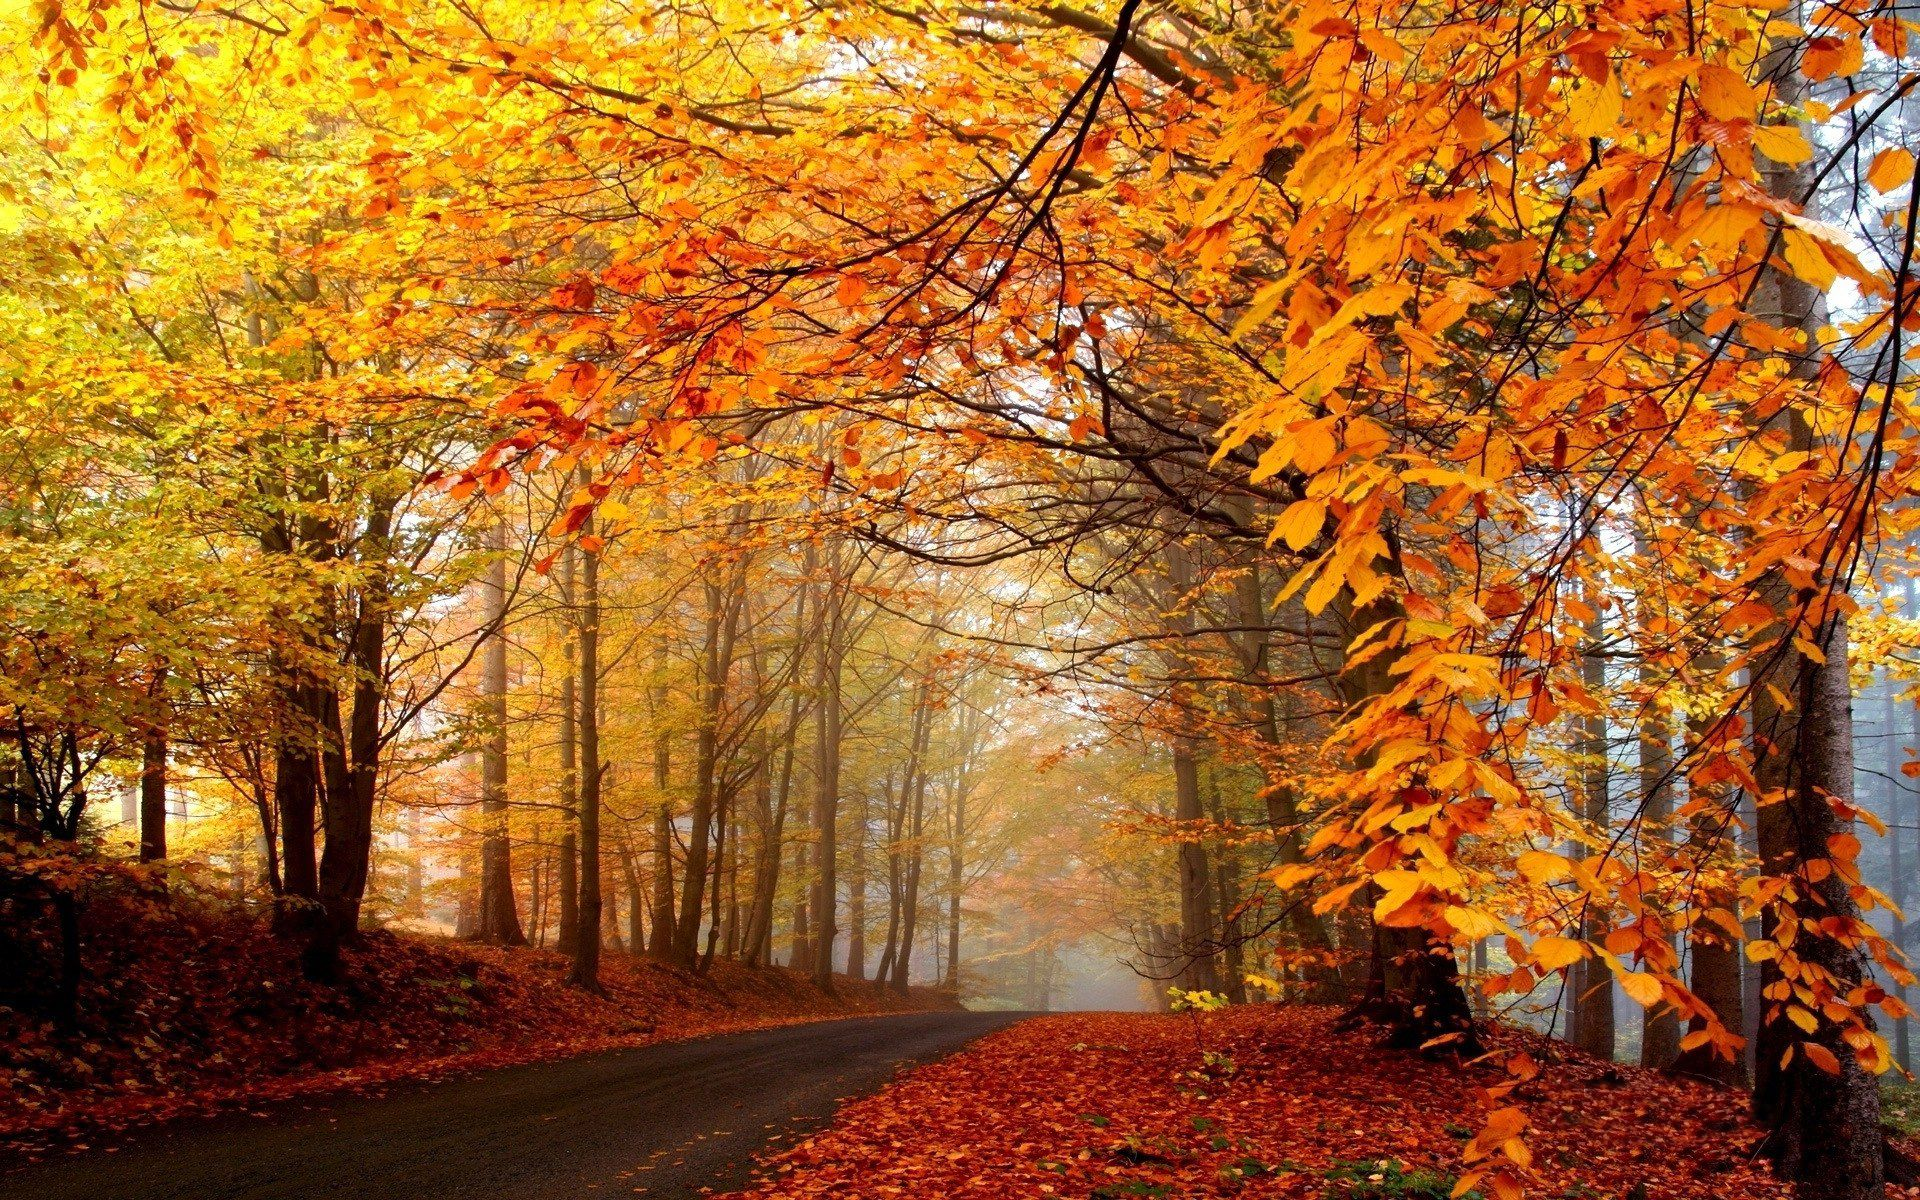 tall and prosperous trees leaves turning yellow what an uncomparable scene autumn natural scenery wallpaper